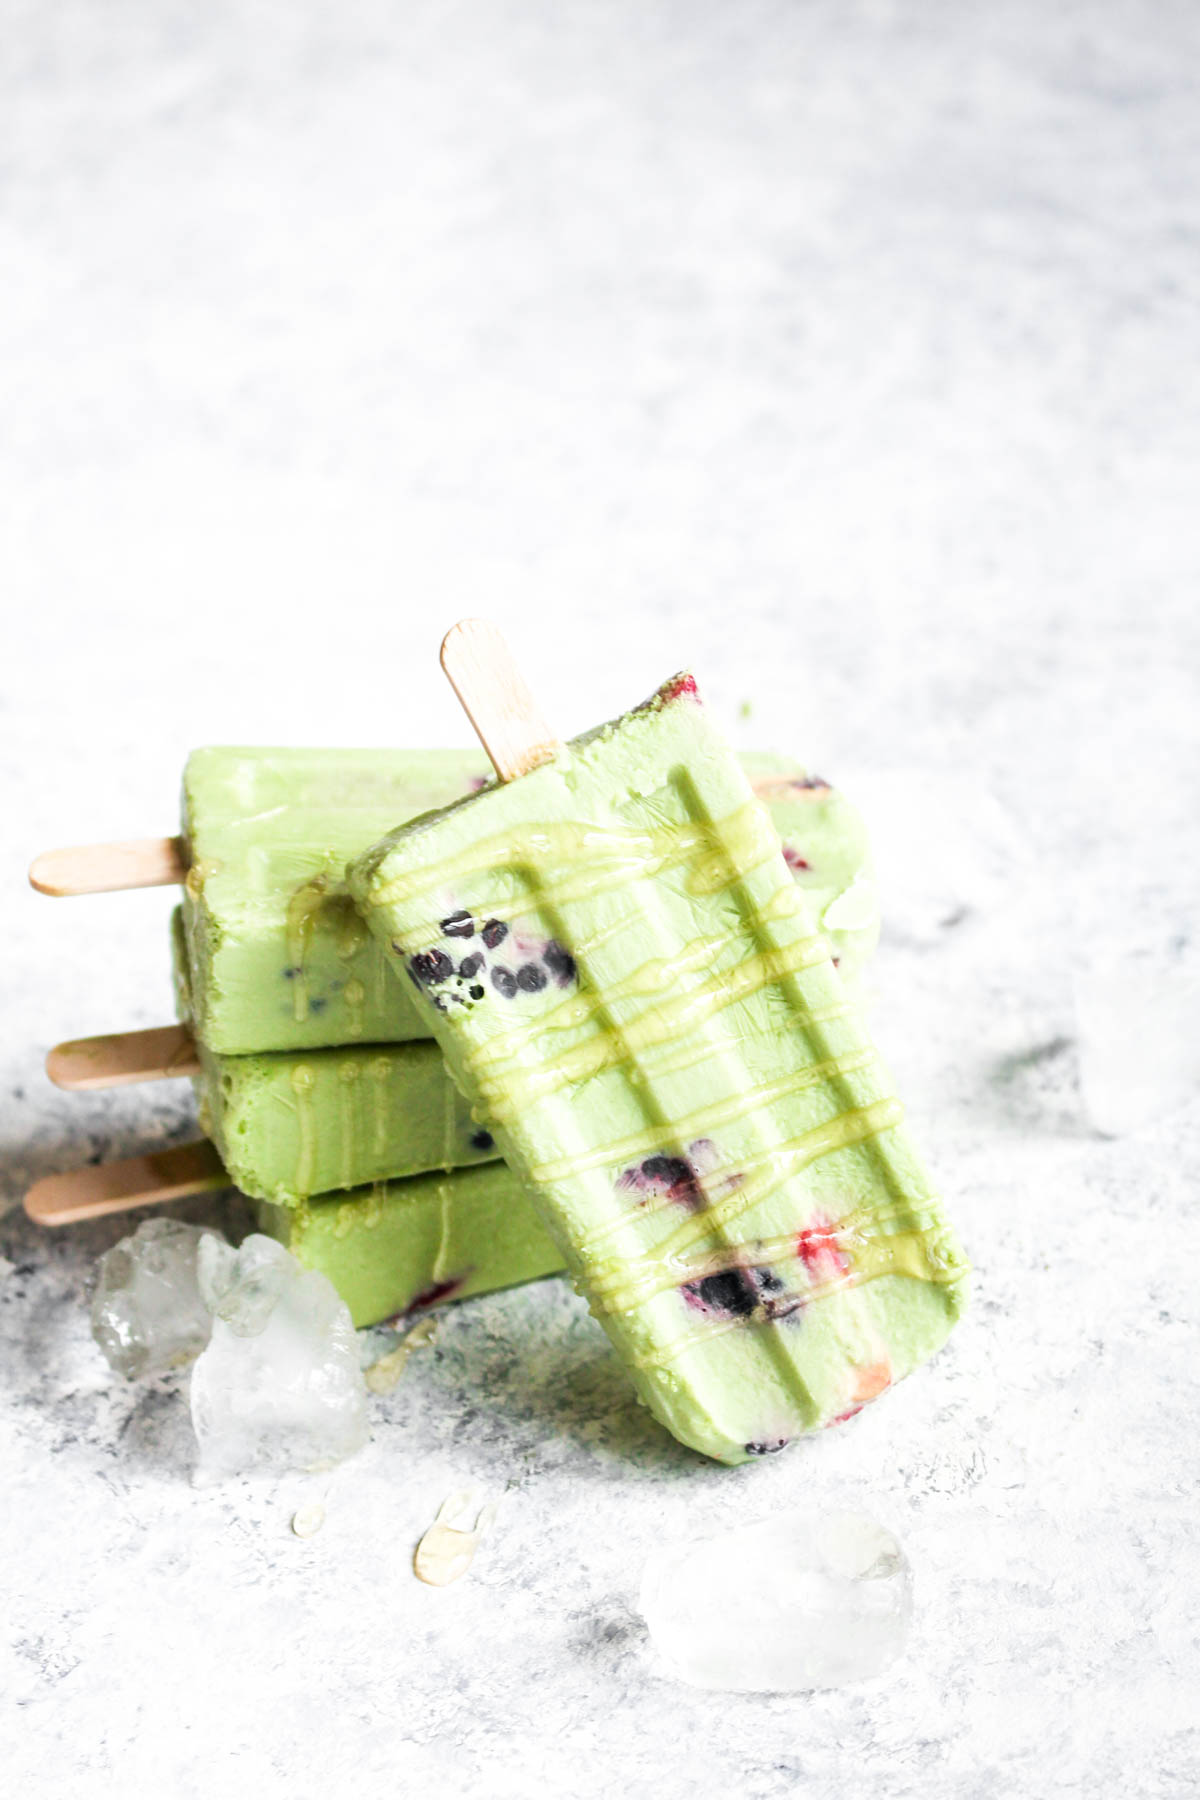 These 5 ingredient Berry Matcha Latte Popsicles with Honey Drizzle are a delicious no-cook 10 minute dessert! Made with creamy coconut milk and naturally sweetened these pops are dairy-free and paleo! | CatchingSeeds.com